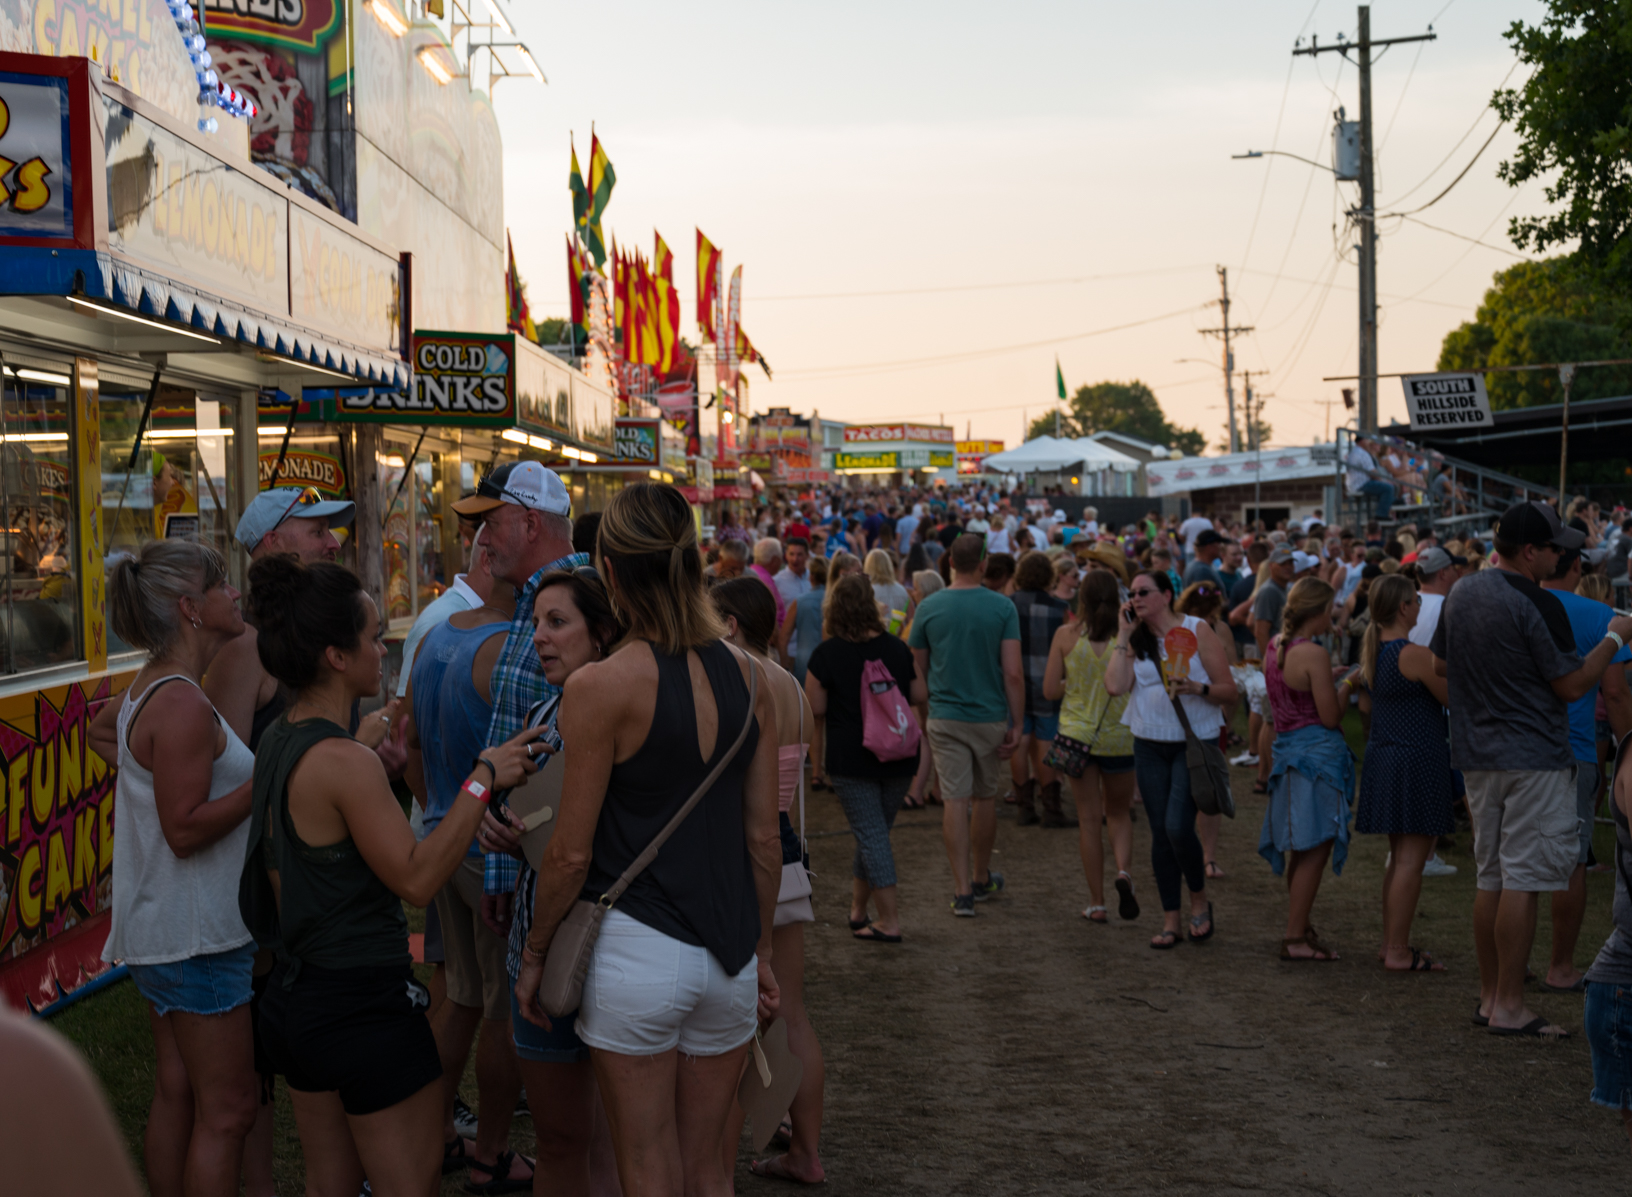 A large crowd packs the Jones County Fair in Monticello before the Hootie and the Blowfish concert. Photo credit: Joseph L. Murphy, Iowa Soybean Association